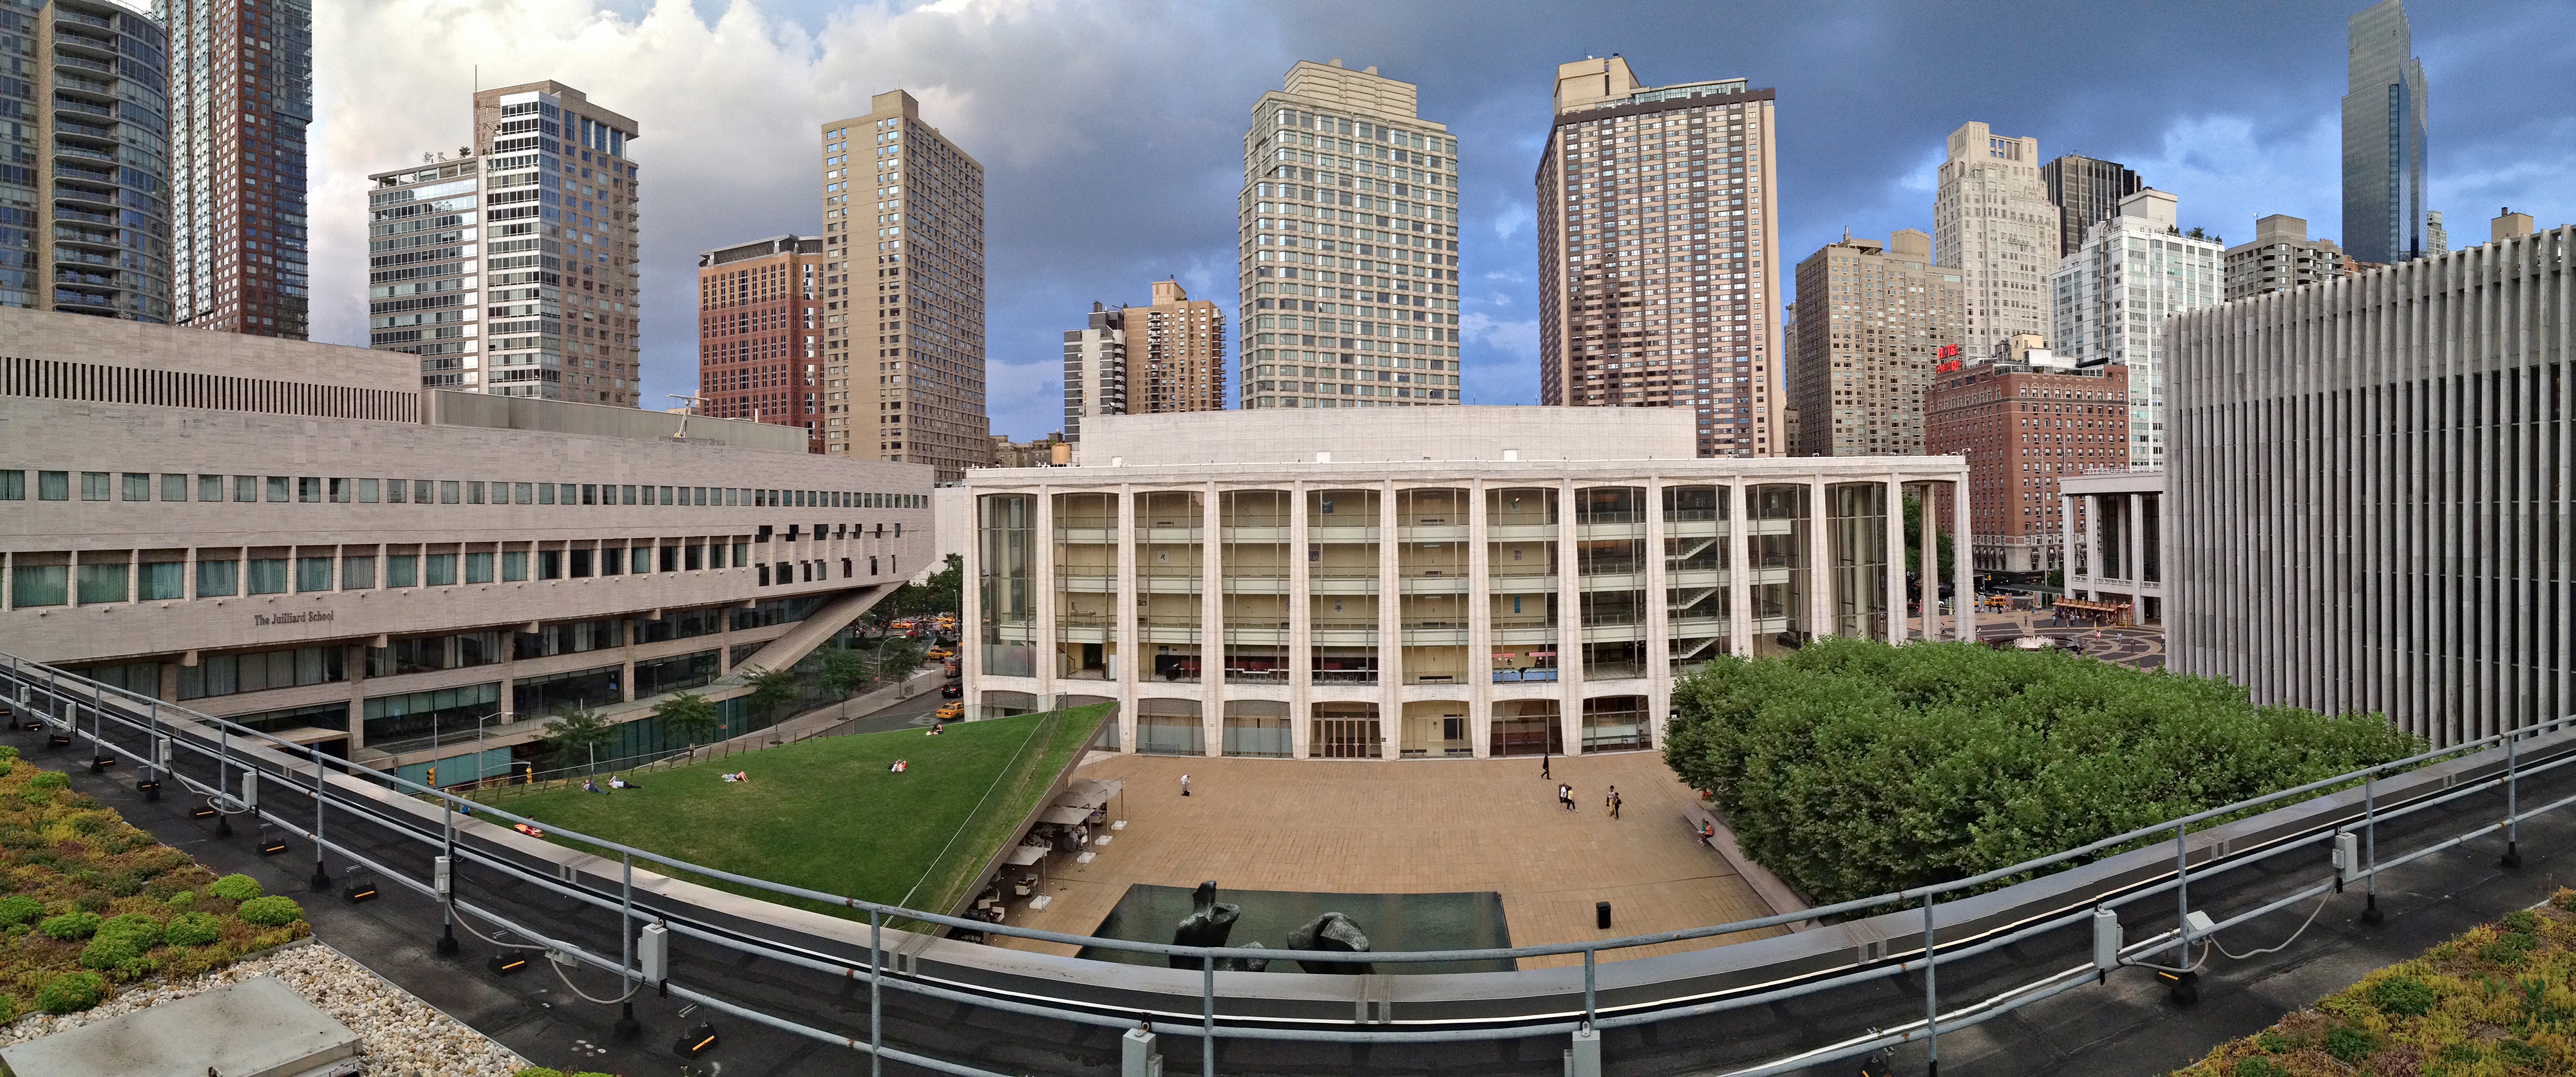 lincoln-center-view23x56©DonKellogg2014